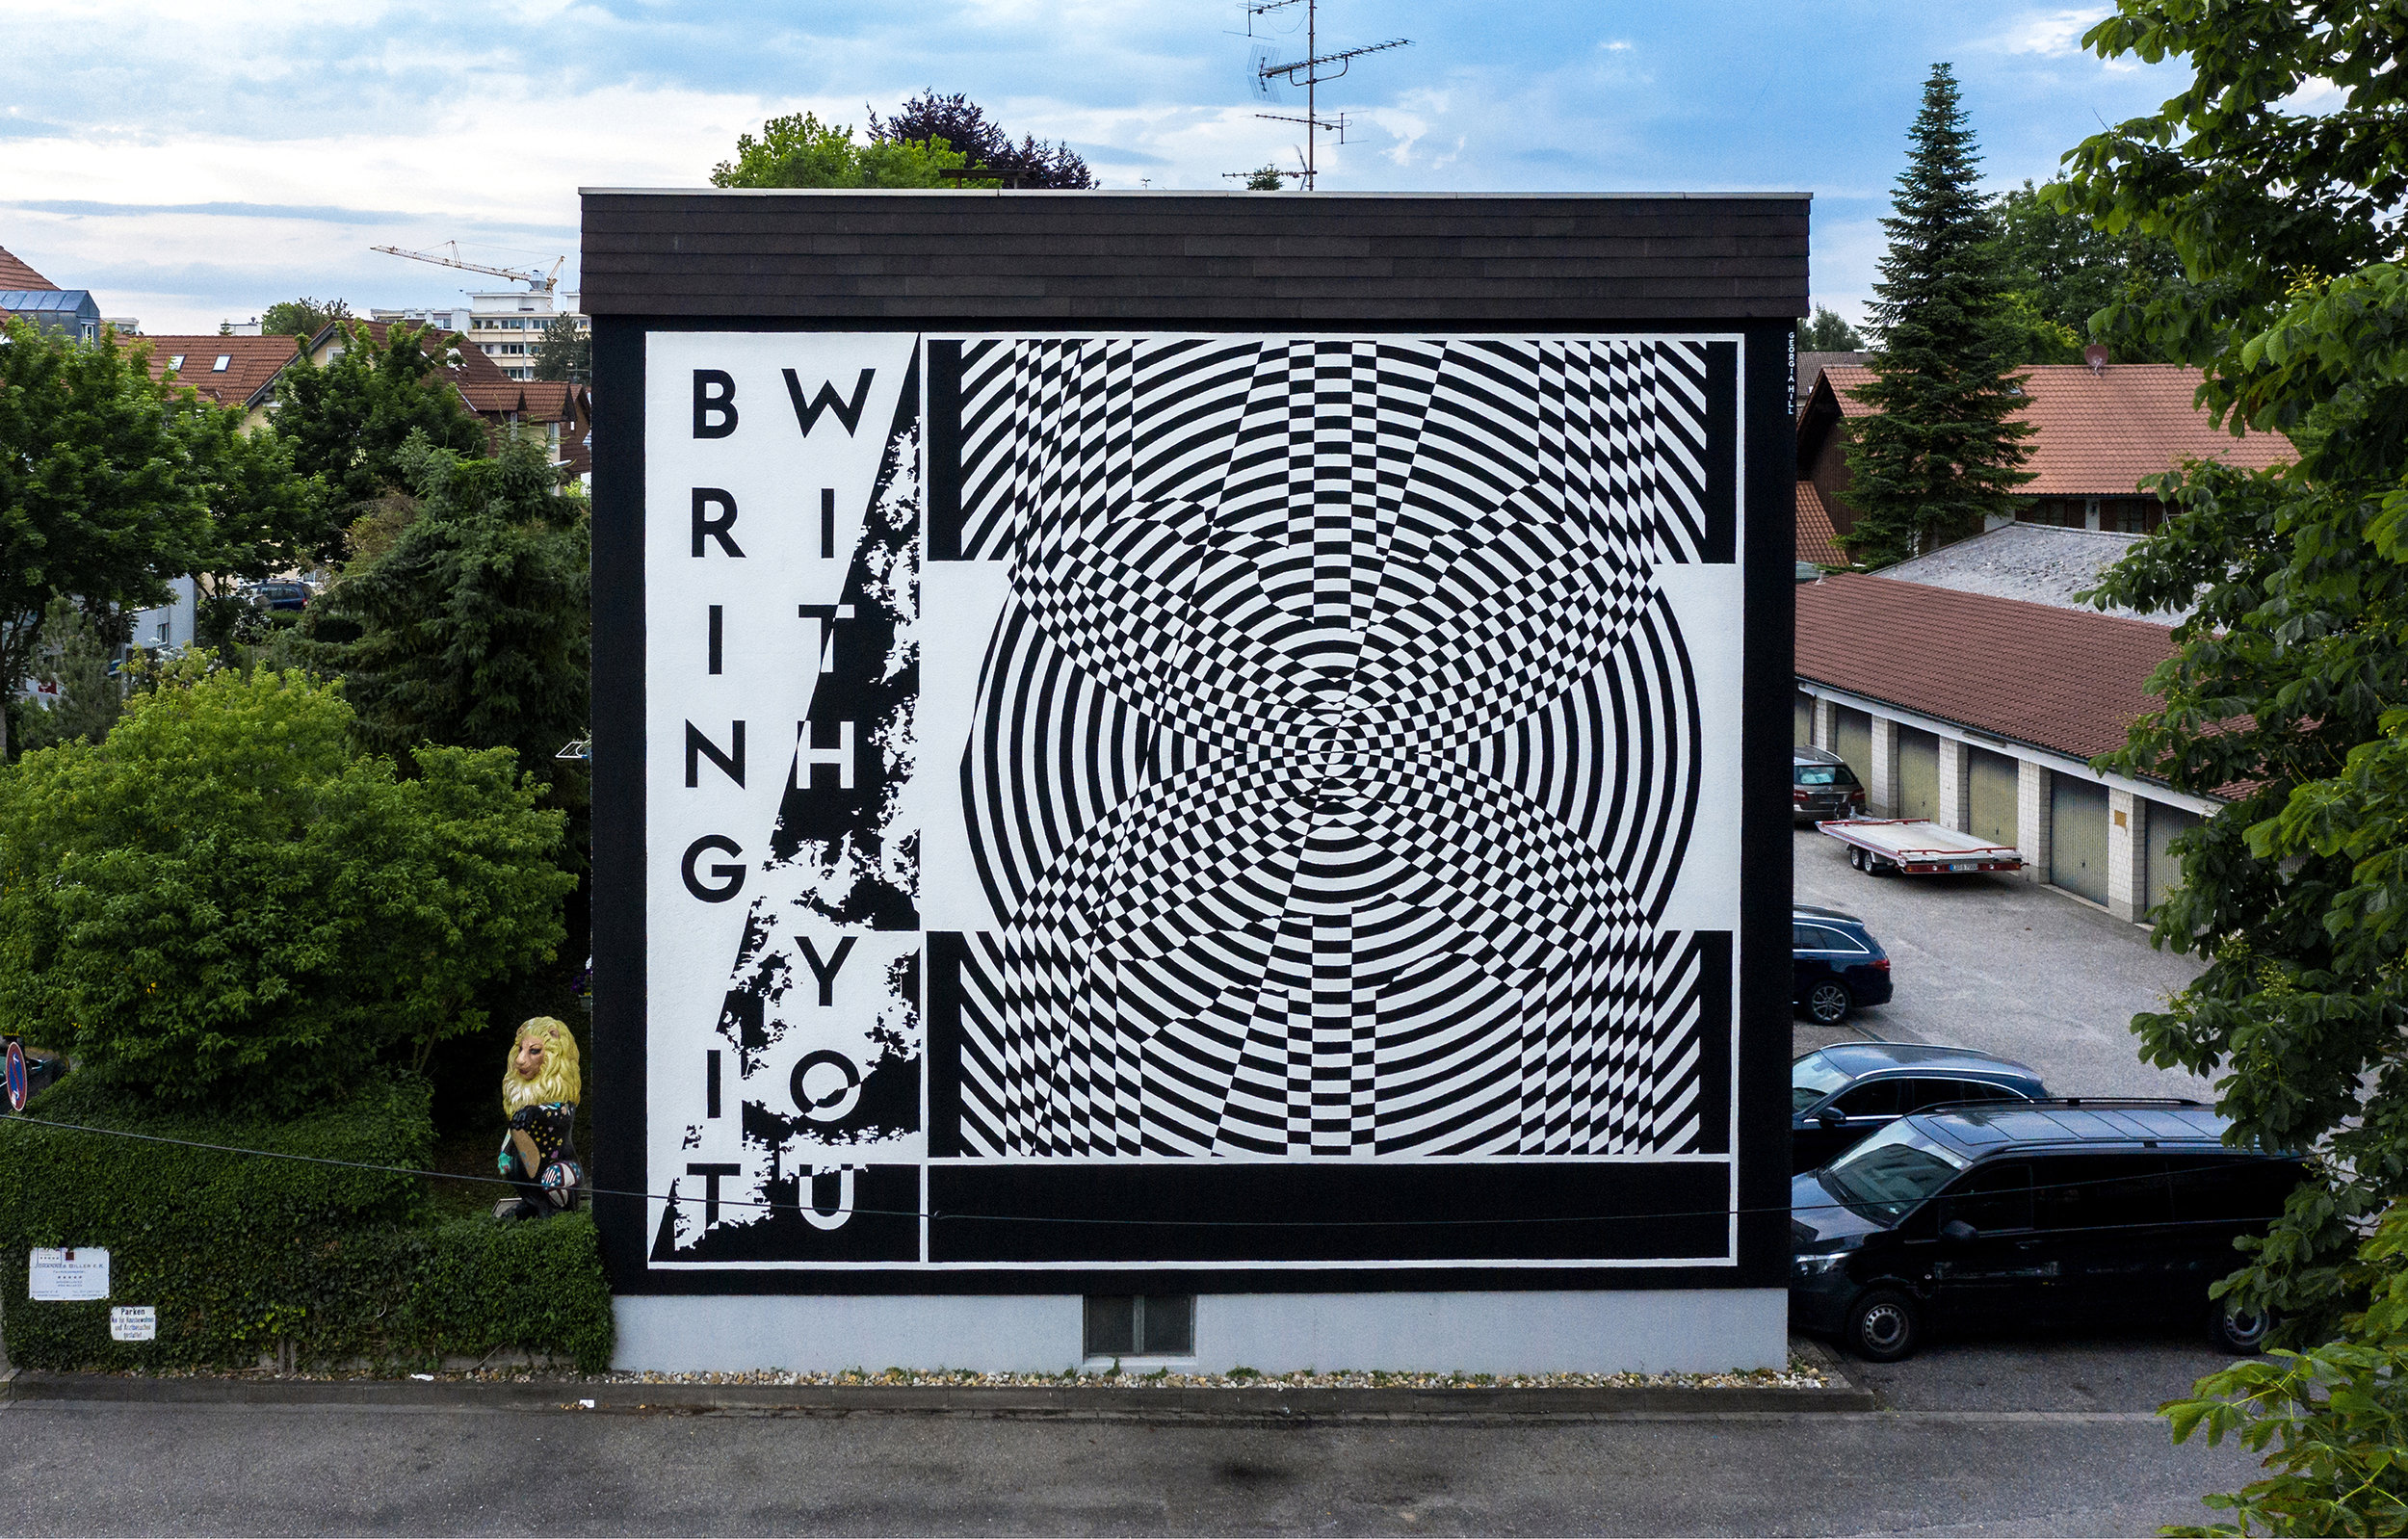 Bring It With You Georgia Hill Fabian Kiein Final Mural Artding Germany 1.jpg